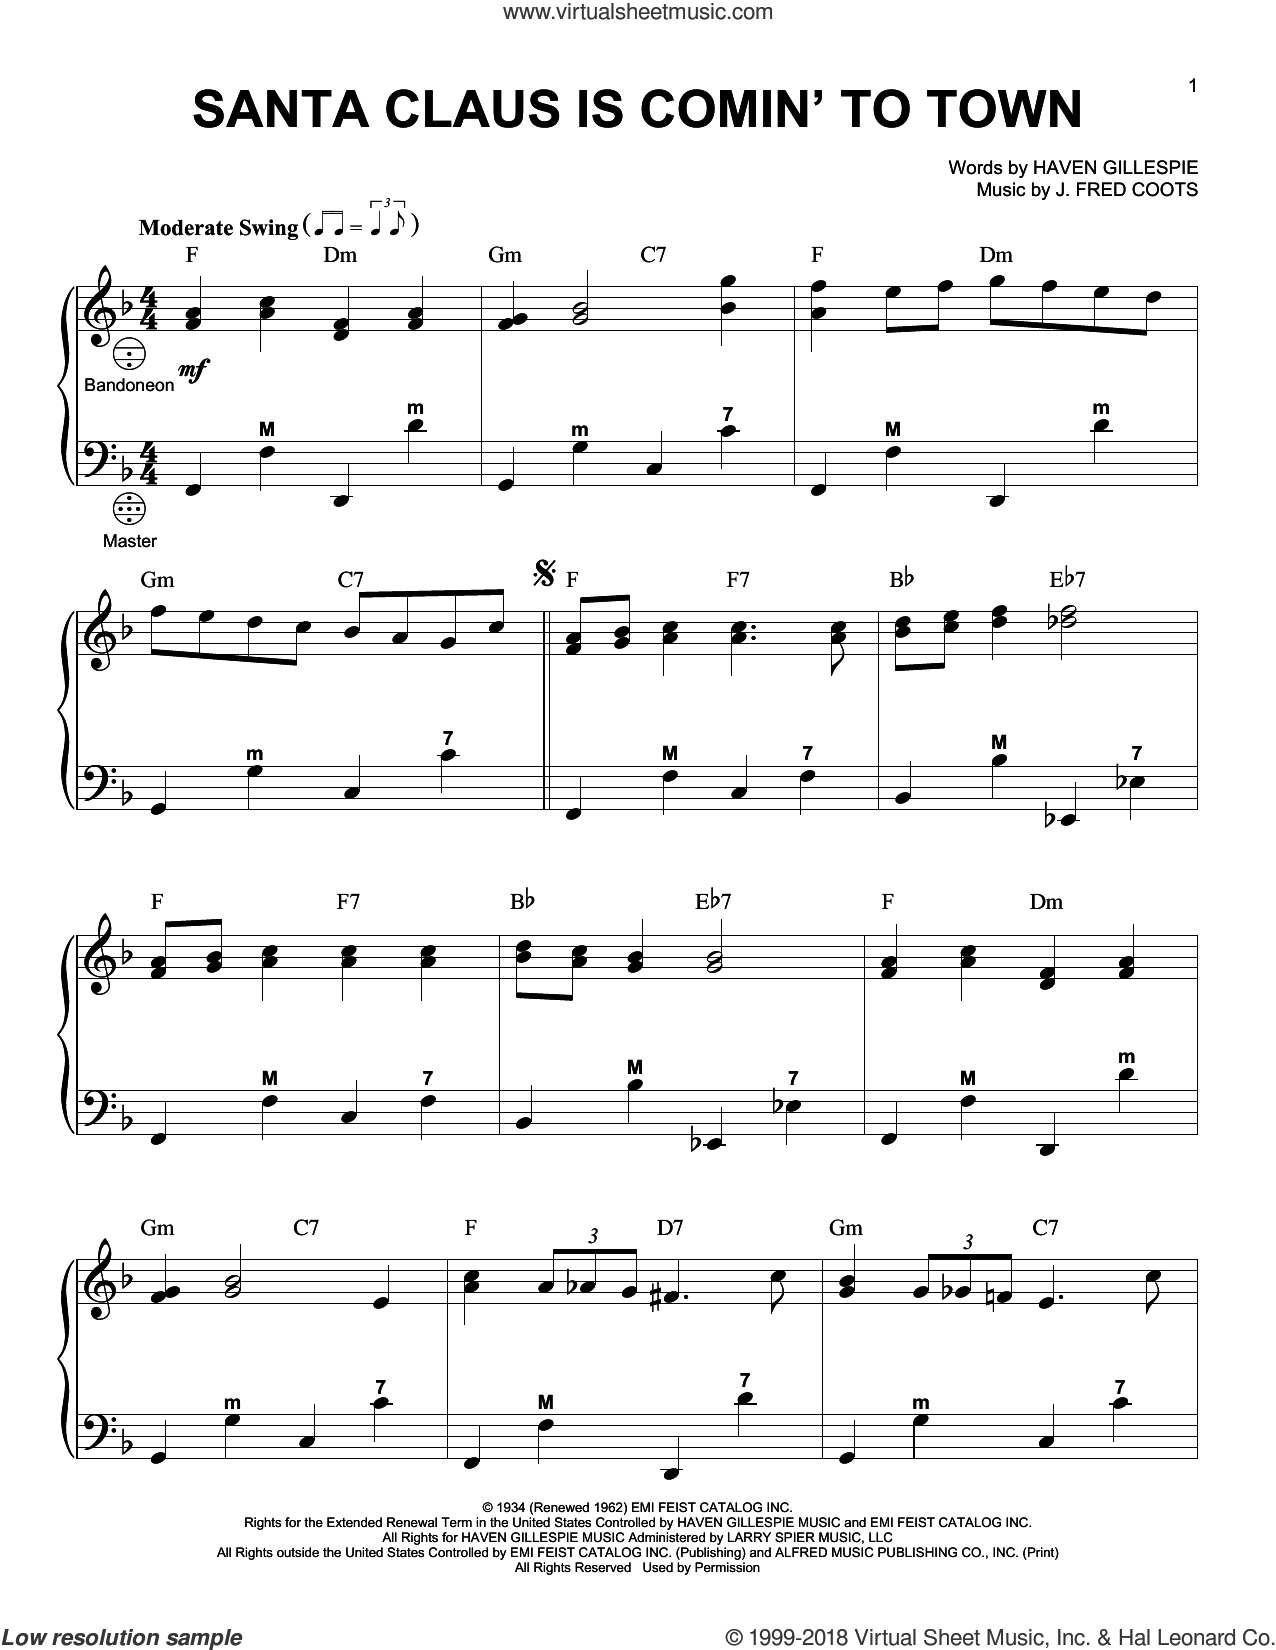 Santa Claus Is Comin' To Town sheet music for accordion by Haven Gillespie